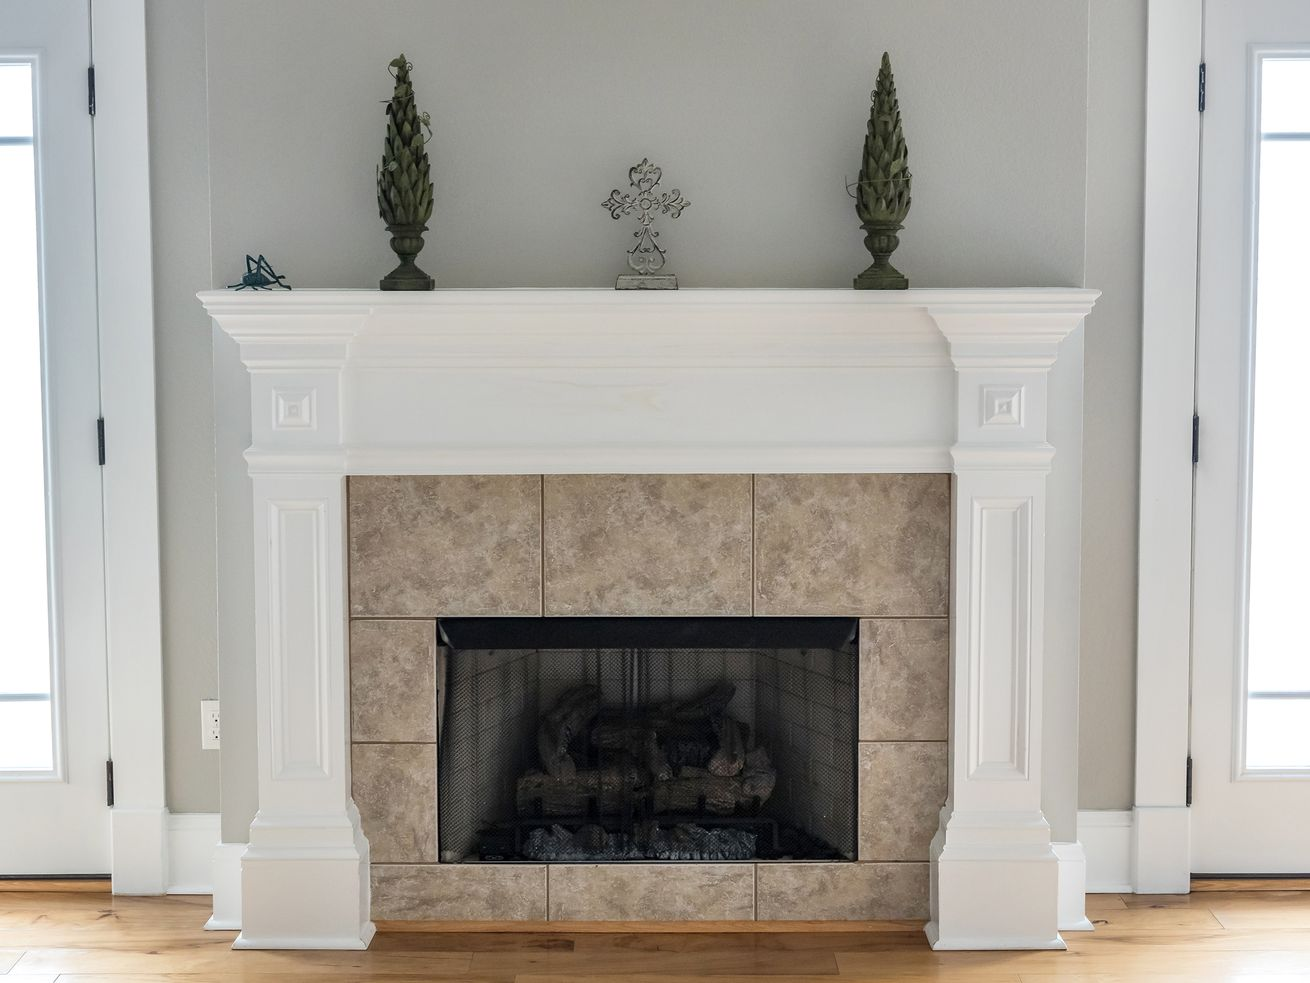 Fireplace with mantel.